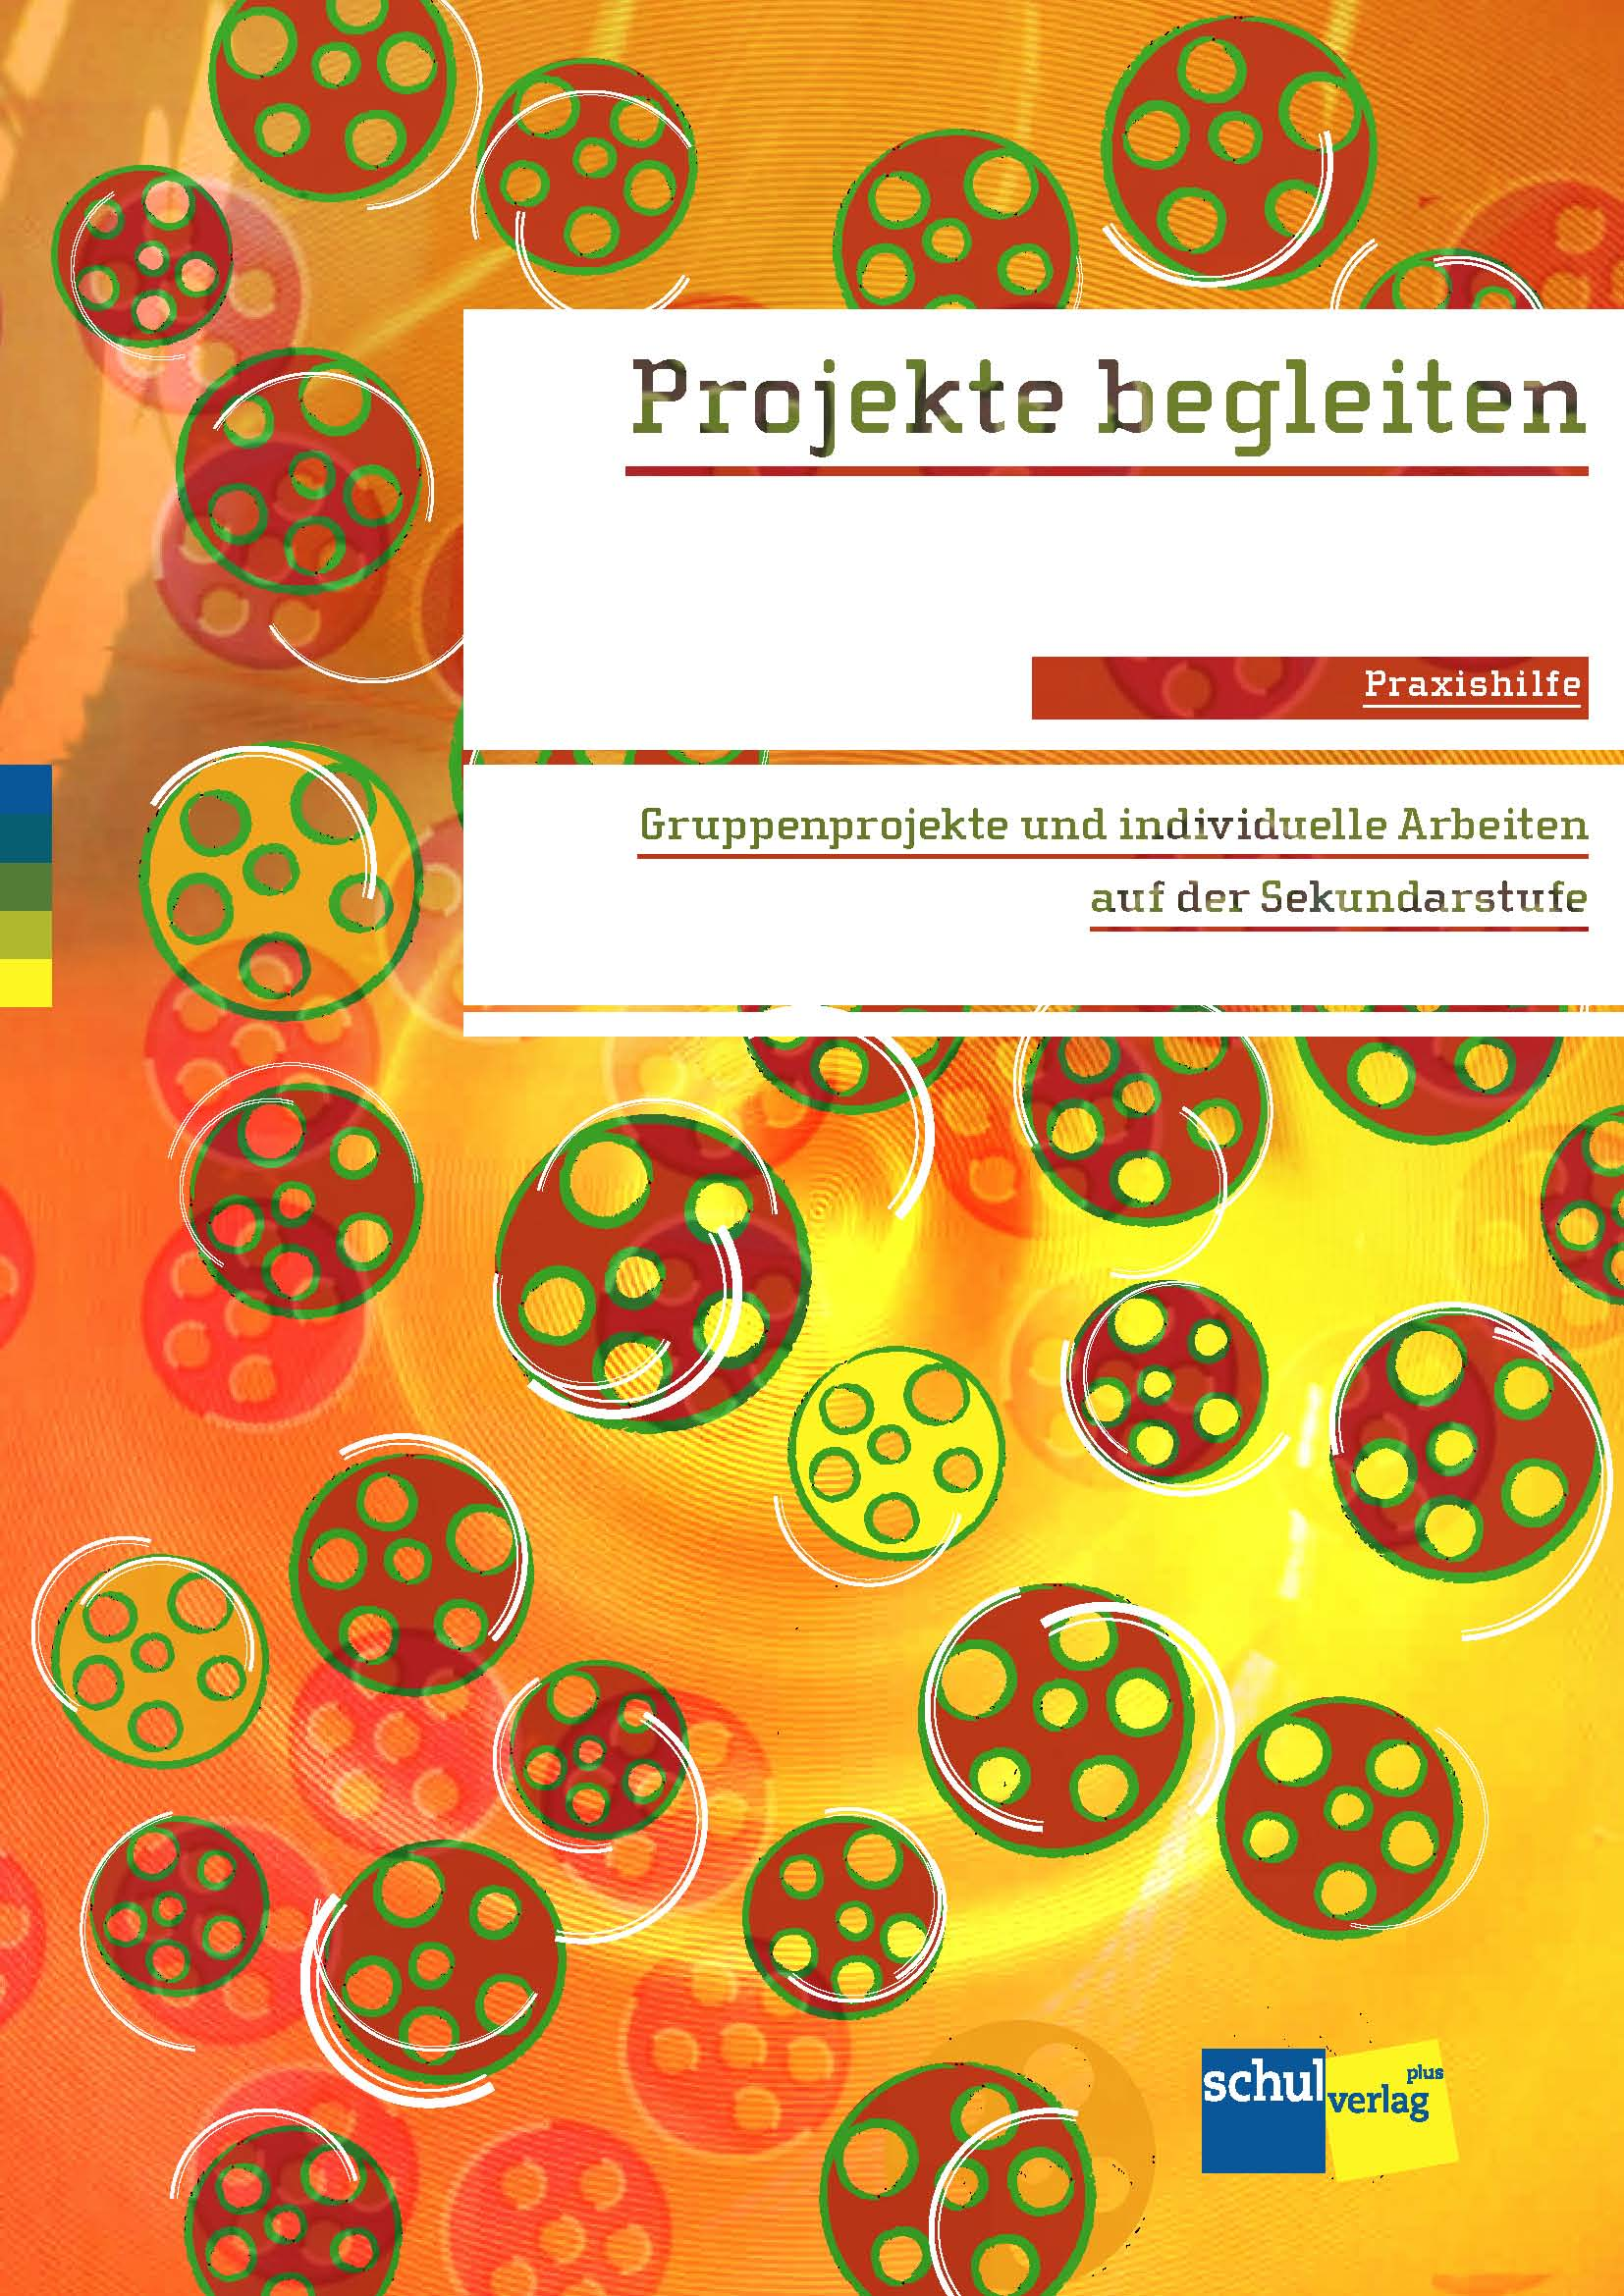 Preview image for LOM object Praxishilfe Projekte begleiten